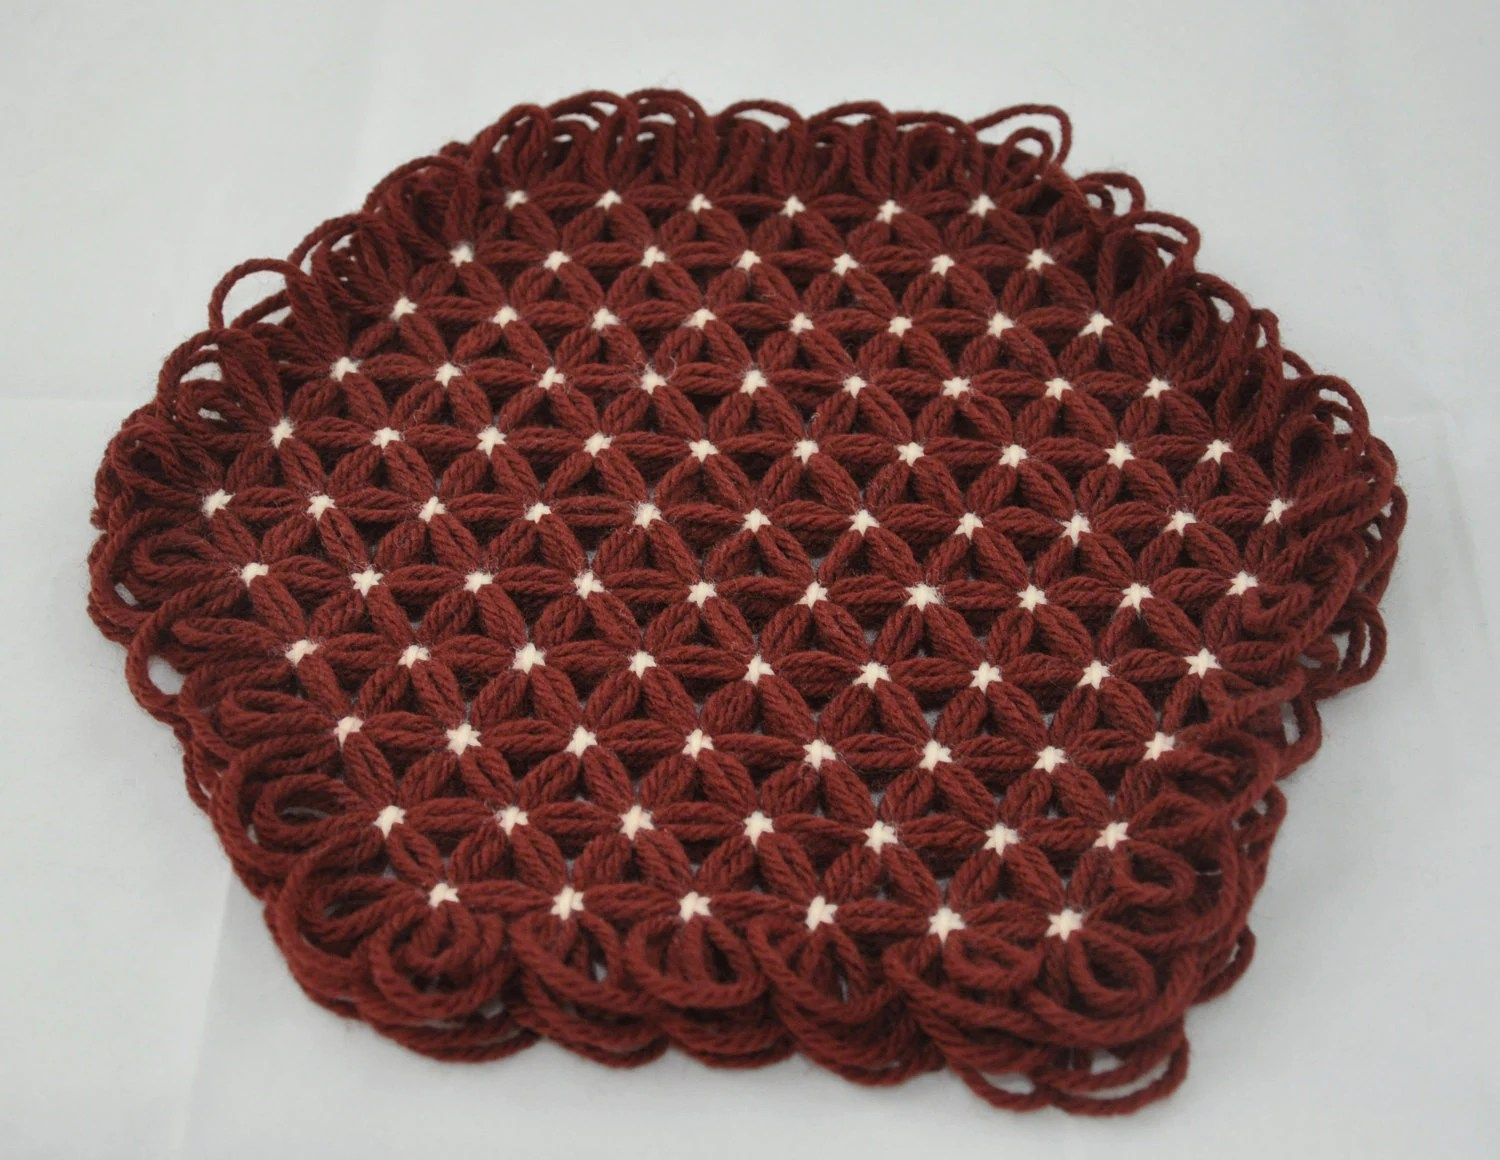 Small Trivet in 4 Layers of Brown Yarn with Cream Ties - Autumn Fall Colors